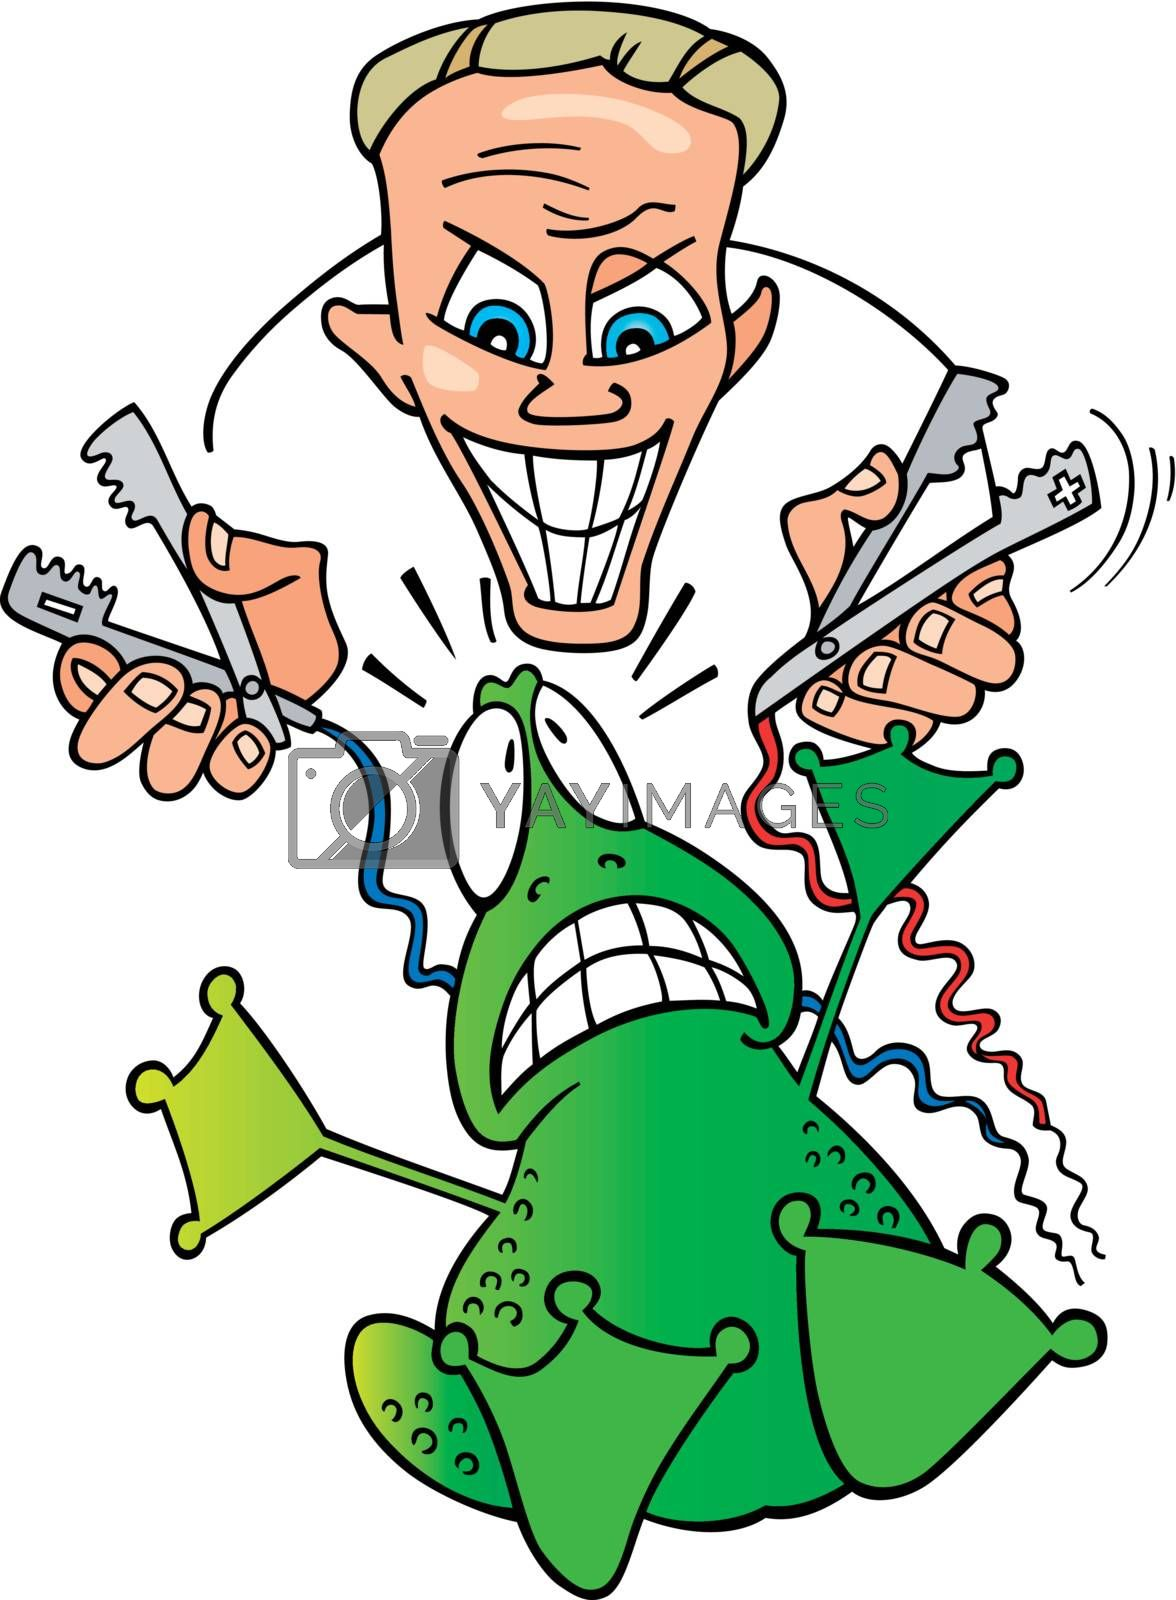 Royalty free image of crazy scientist and frightened frog by izakowski